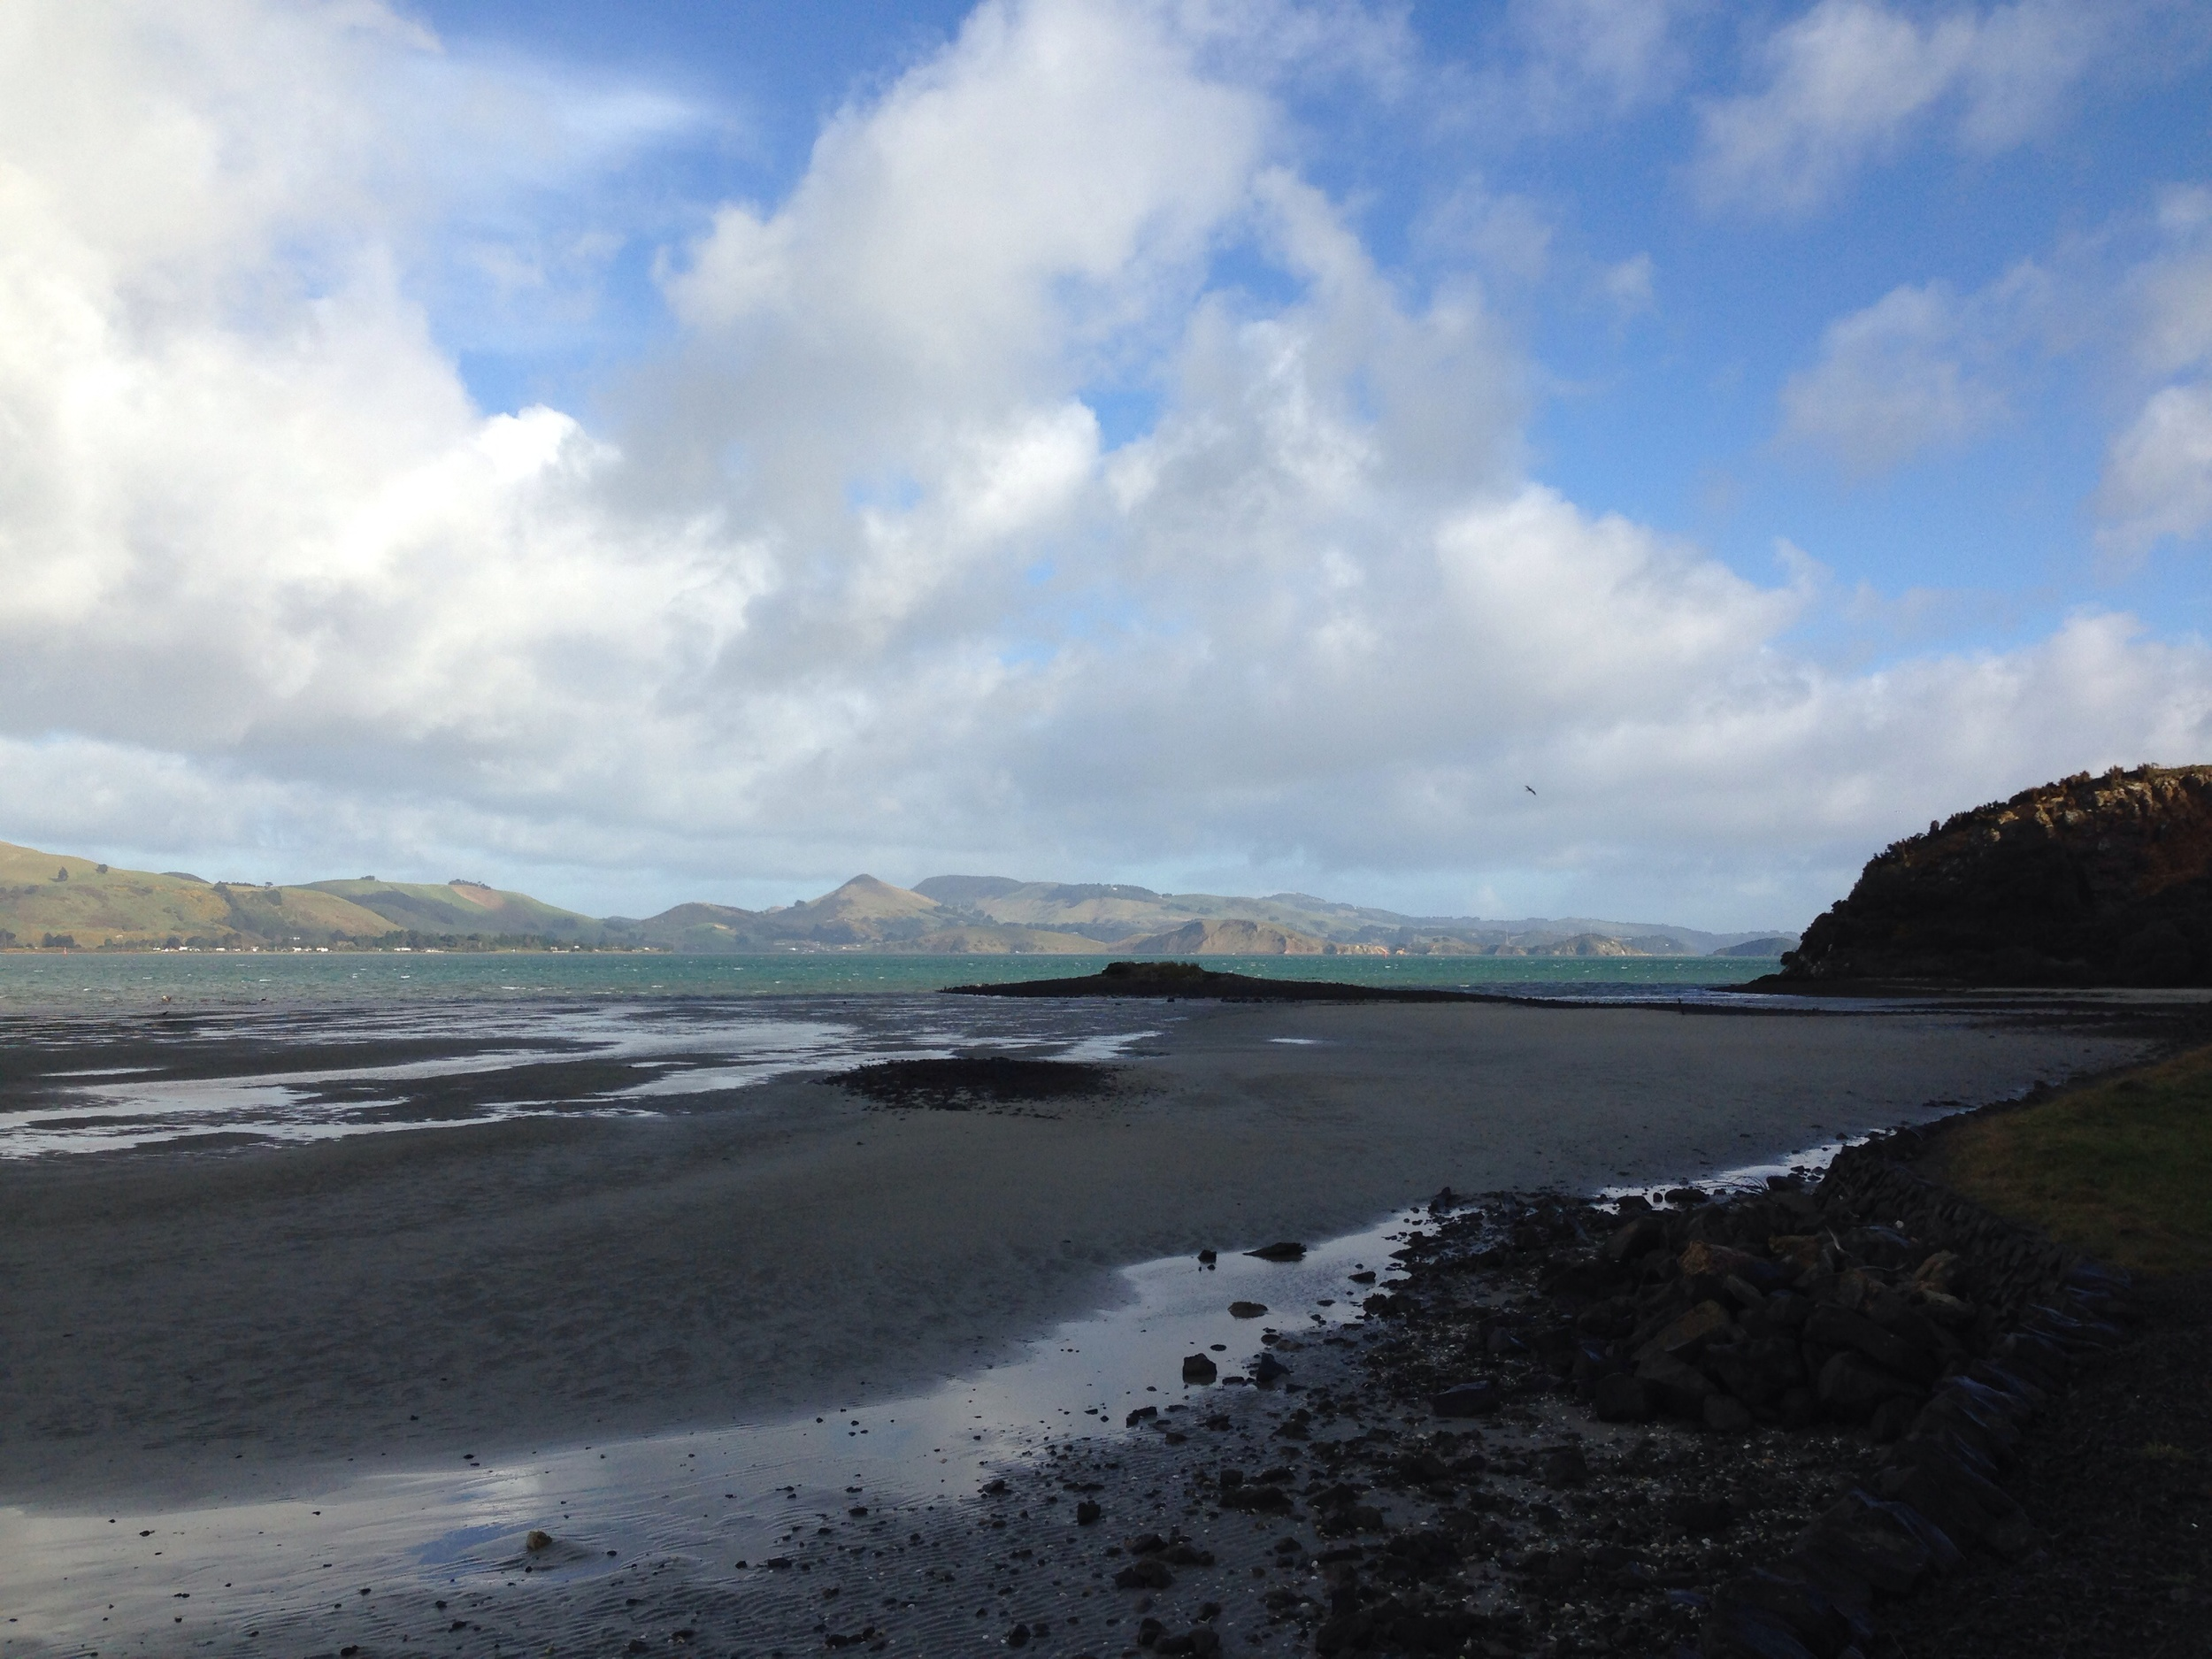 Otago Harbour as seen from Aramoana Road.